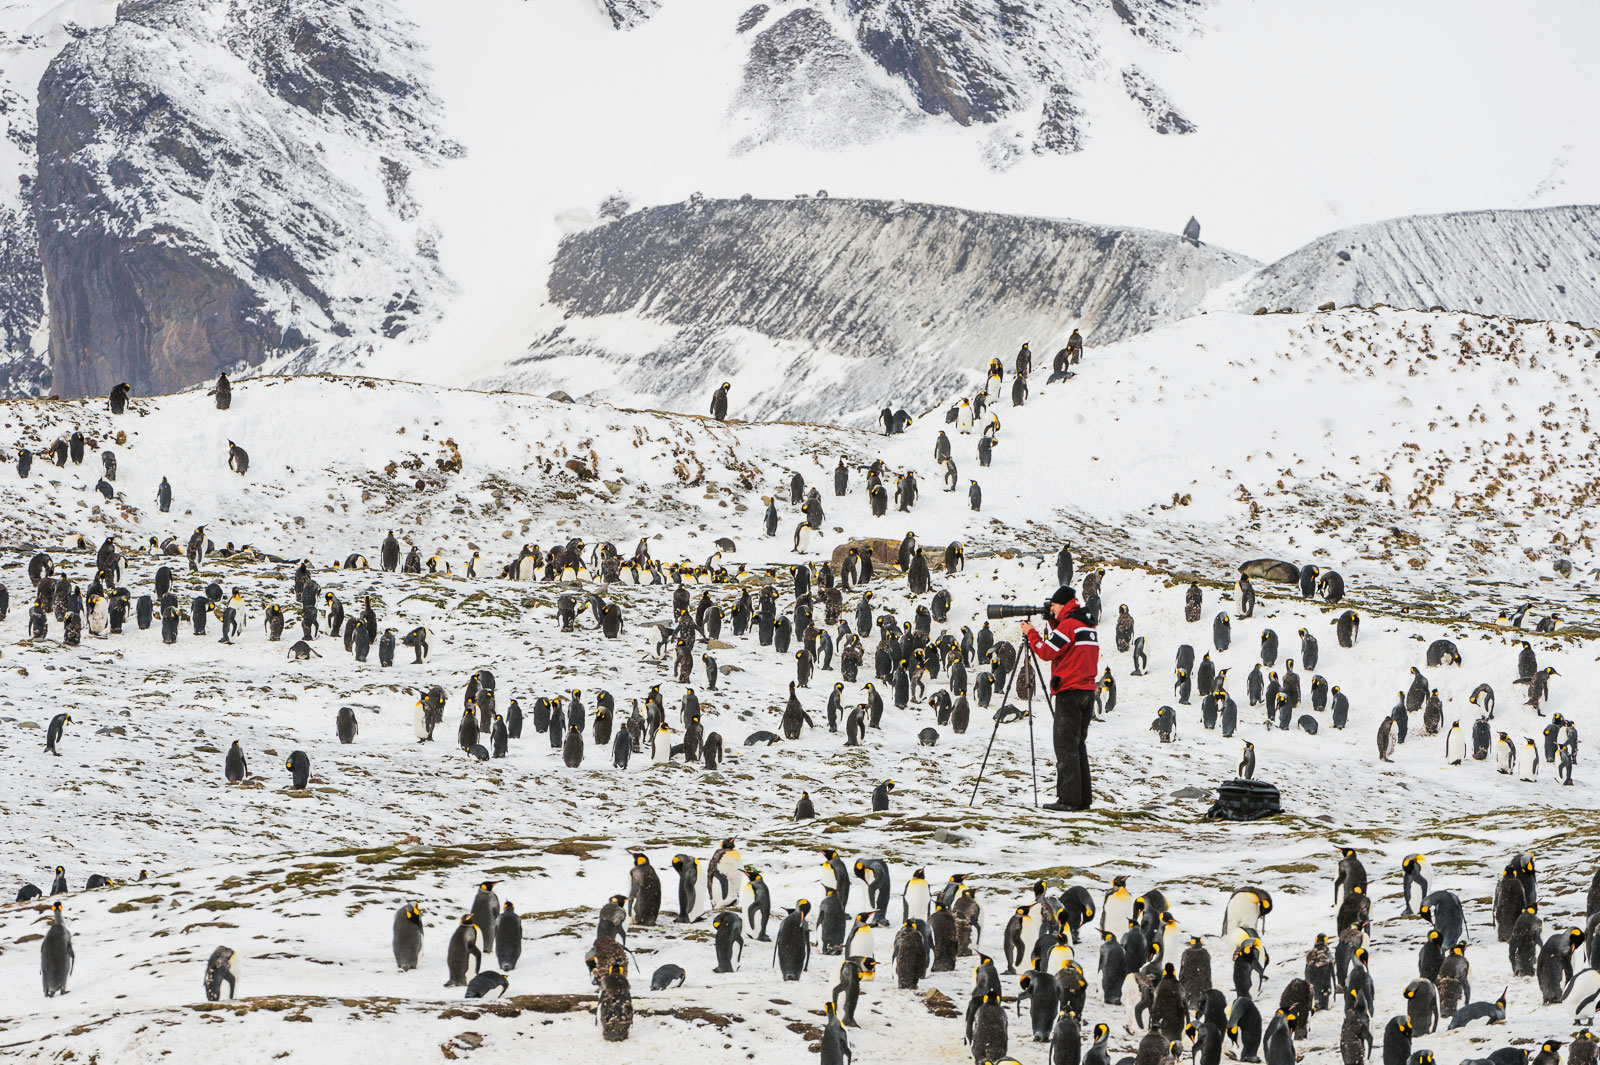 Photographer taking pictures of King Penguins, St. Andrews Bay, South Georgia Island, Antarctica